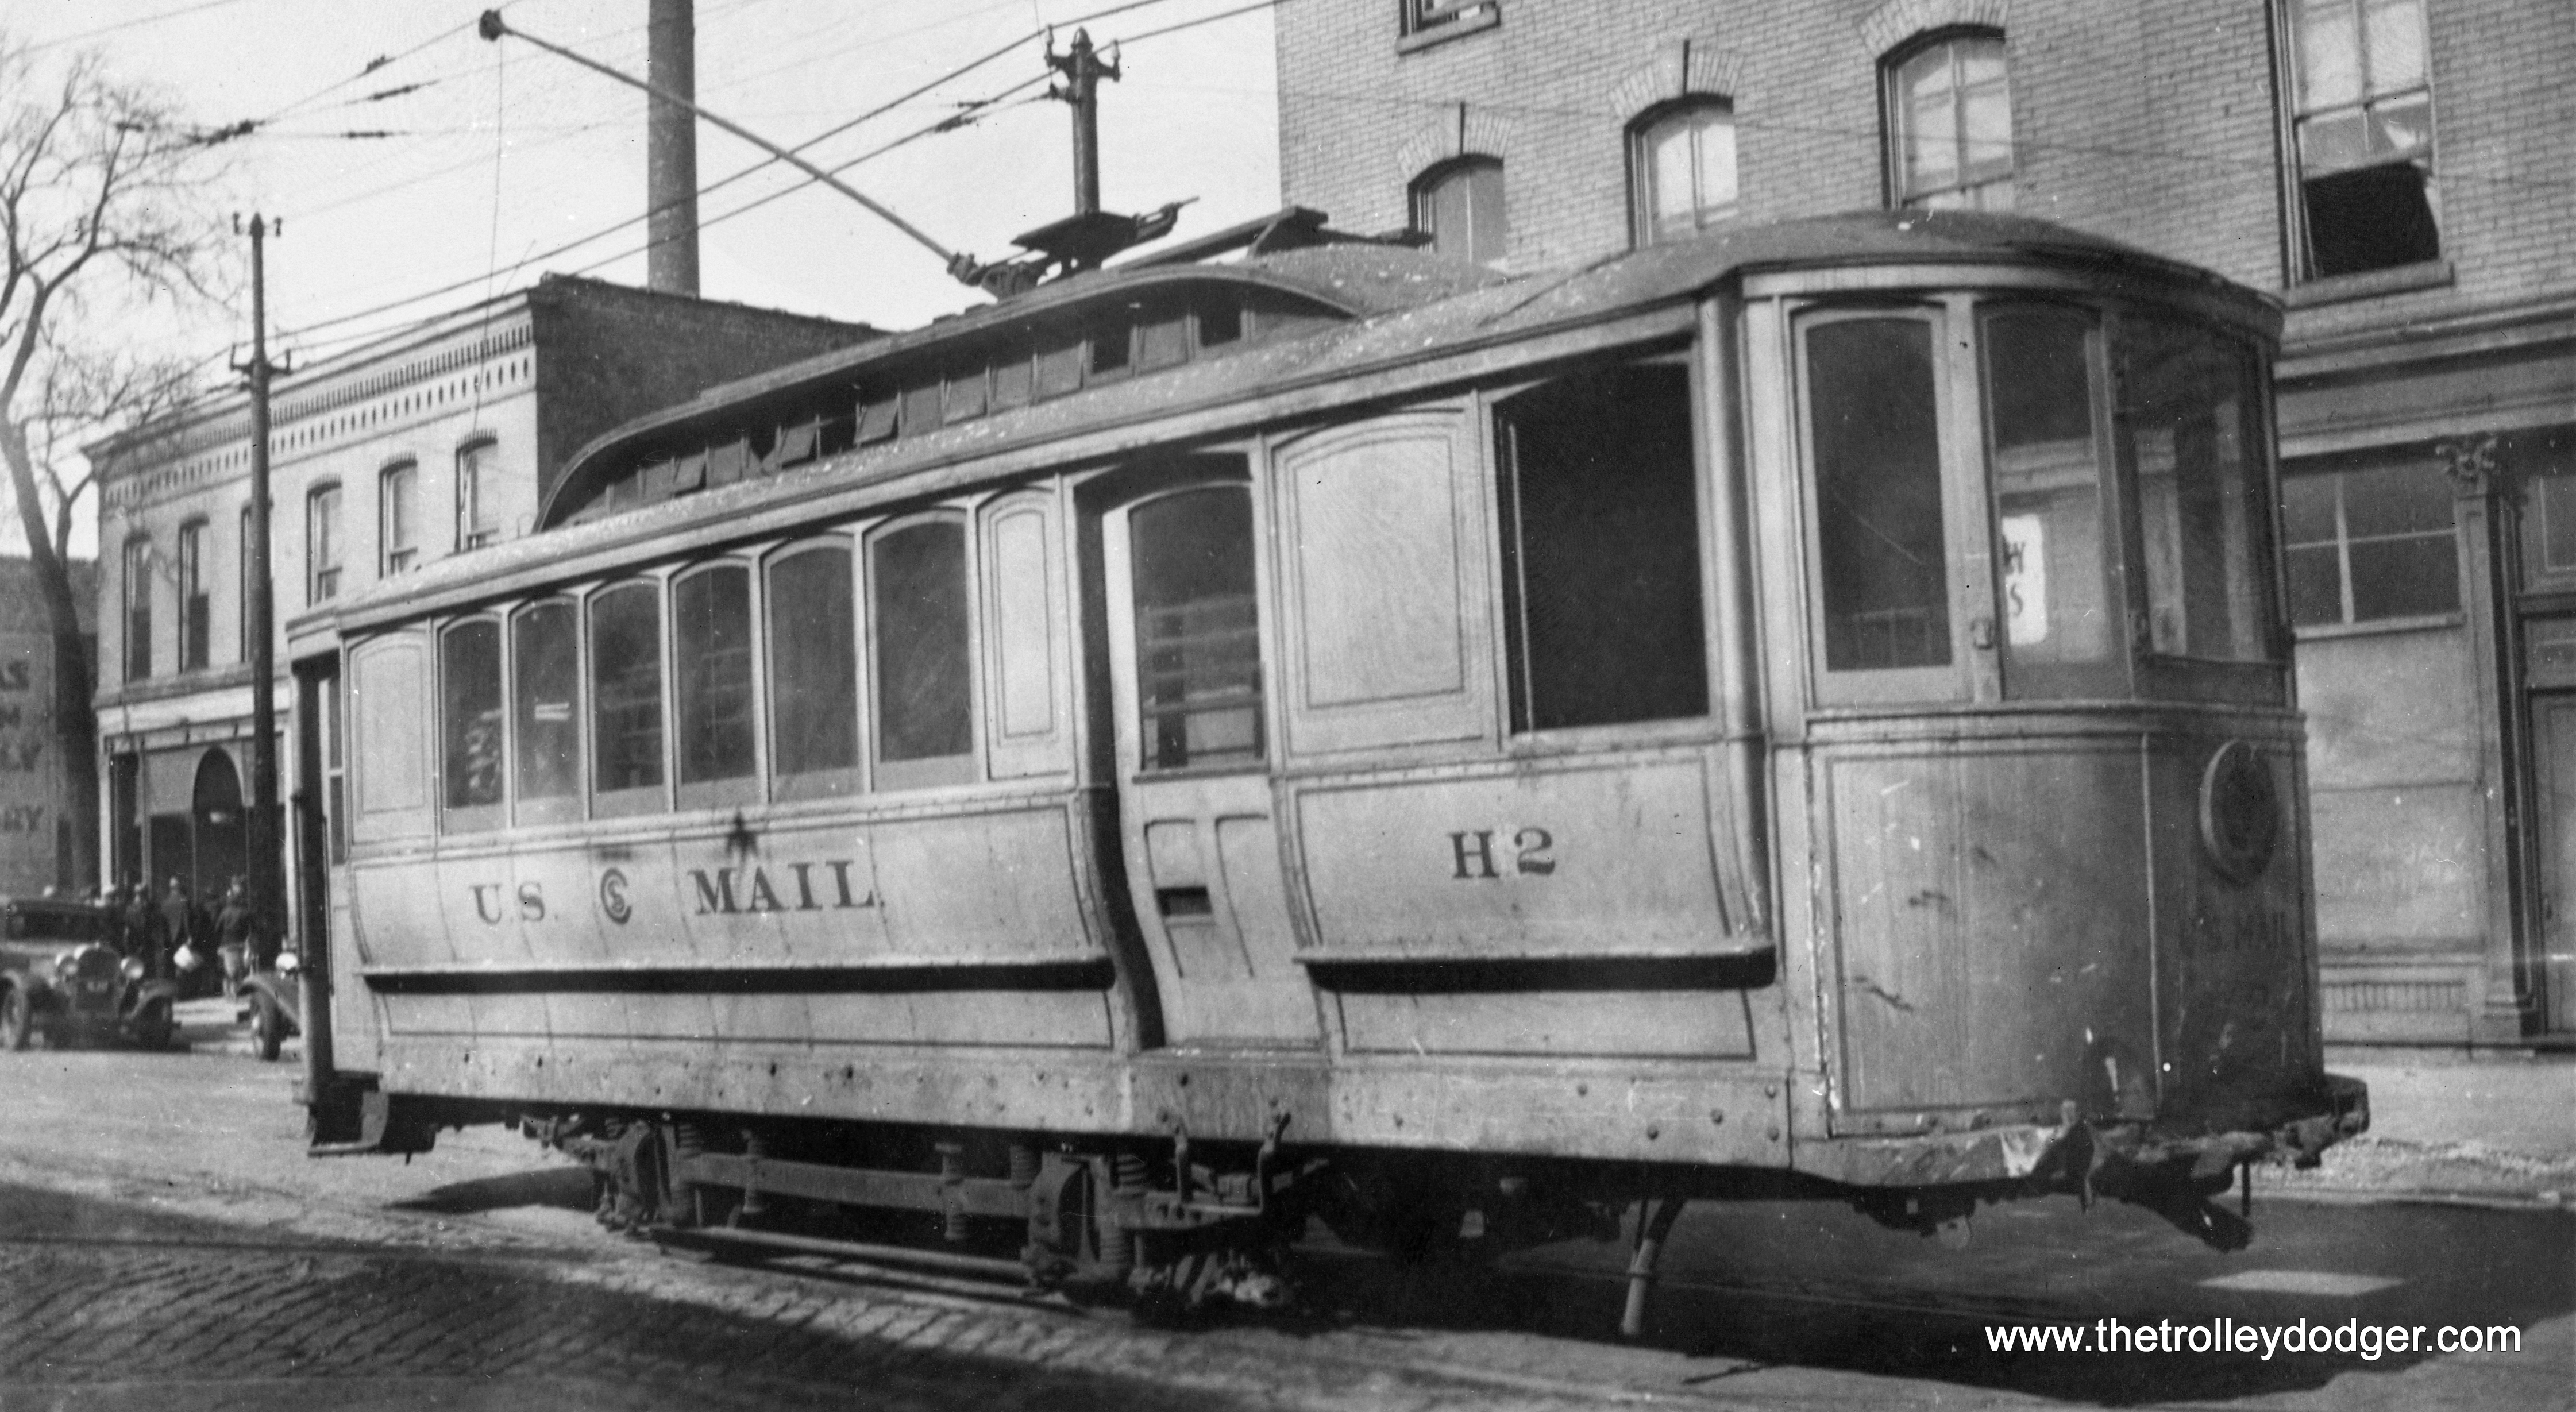 railroad dating site Times herald archives dating back to the 1940s point railroad may eventually alleviate front street bridge he was told by railroad officials that there.